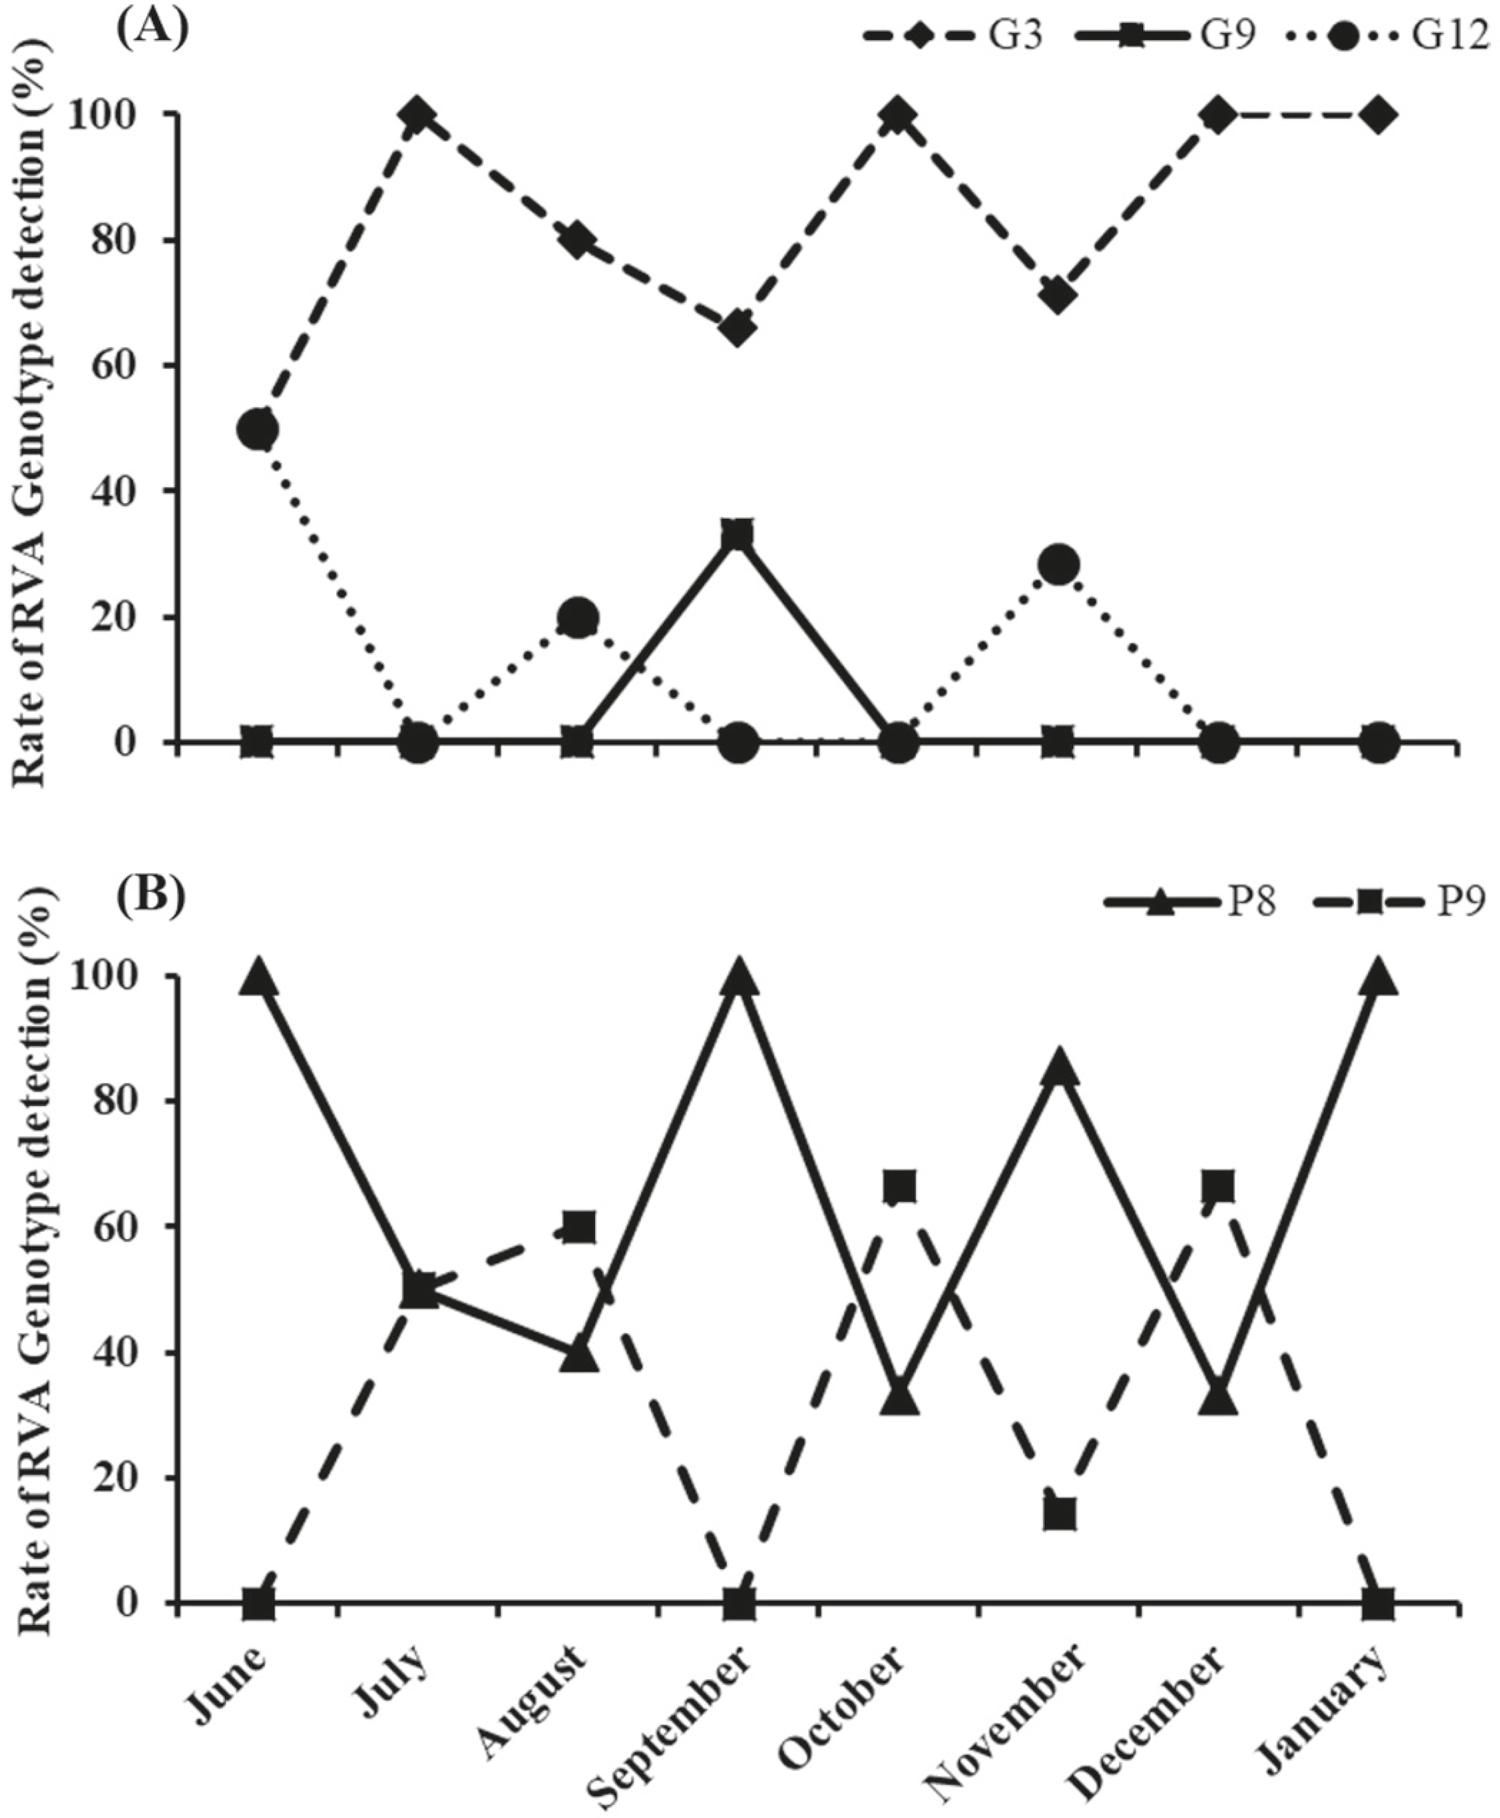 - Monthly rotavirus A genotype confirmation. Genotypes G (A) and P (B) rate distribution are depicted.